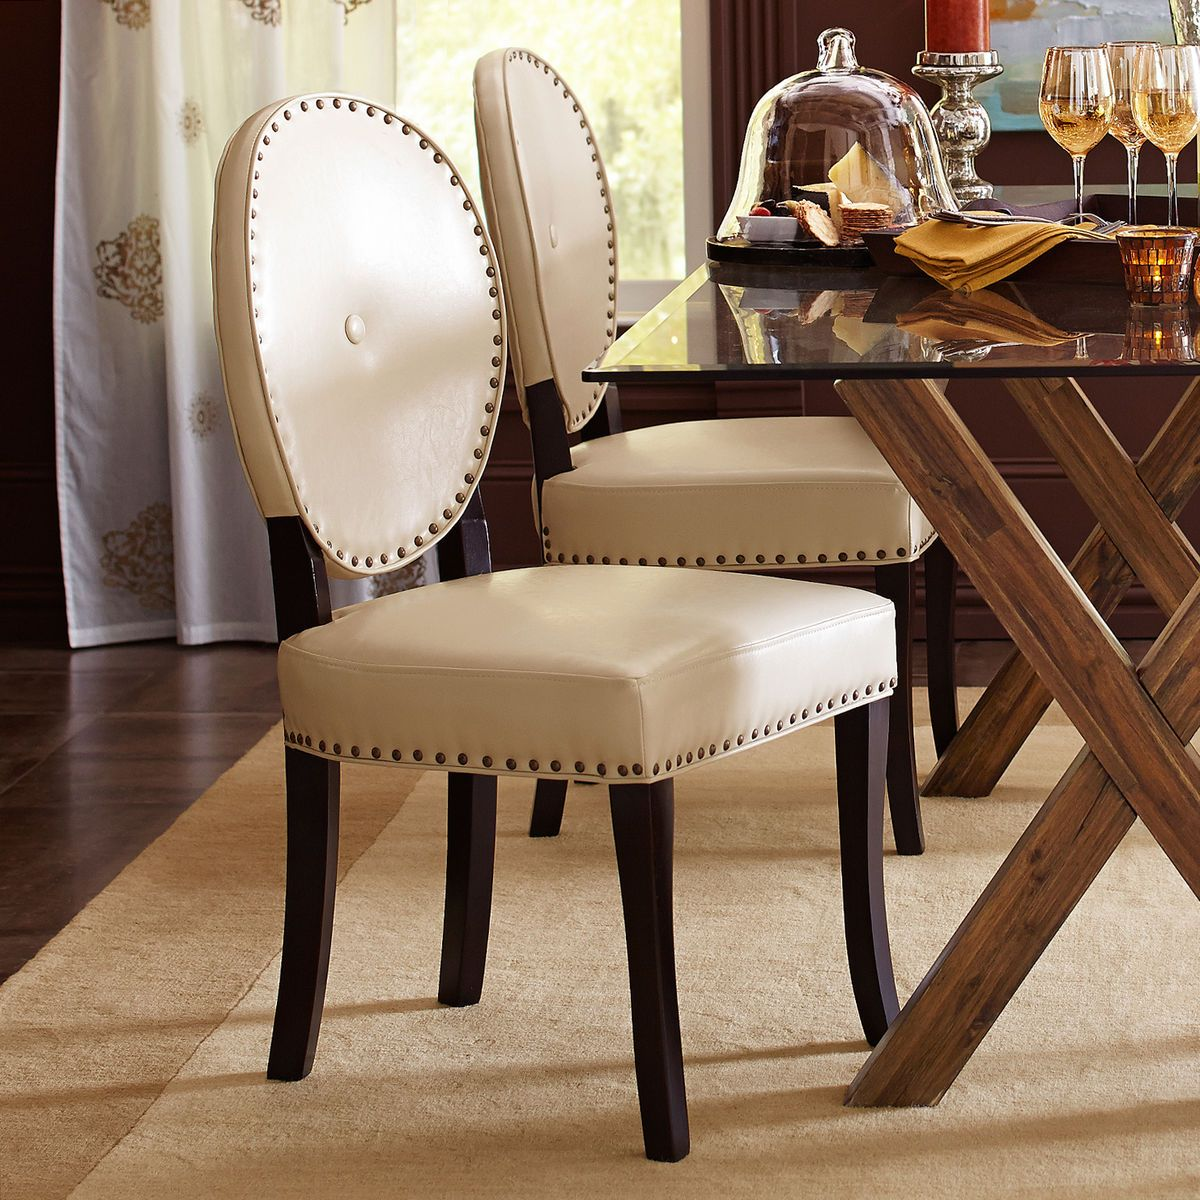 Stupendous Cadence Ivory Dining Chair With Espresso Wood Dining Caraccident5 Cool Chair Designs And Ideas Caraccident5Info